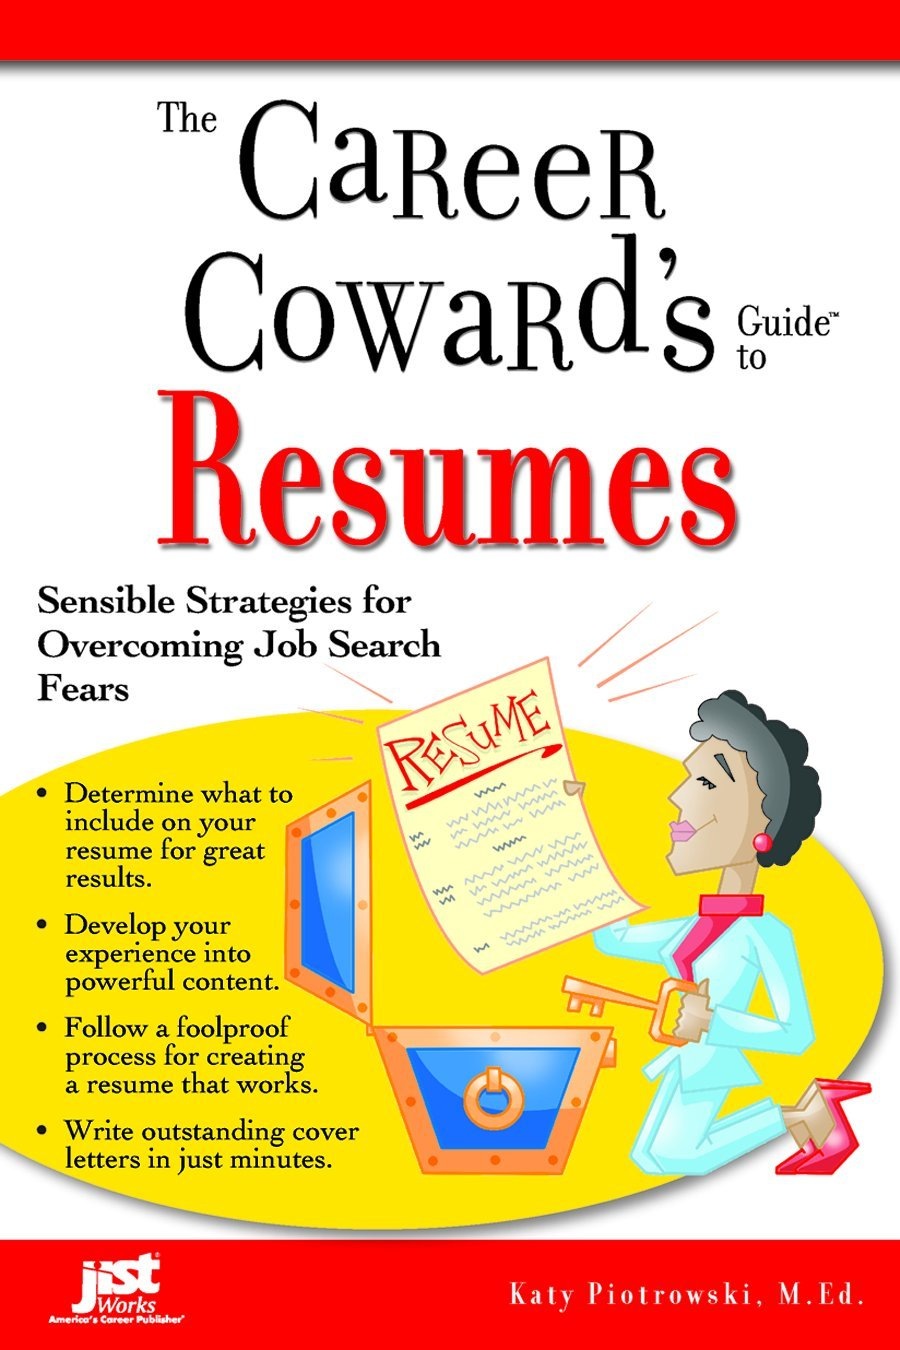 Download The Career Coward's Guide To Resumes: Sensible Strategies for Overcoming Job Search Fears ebook